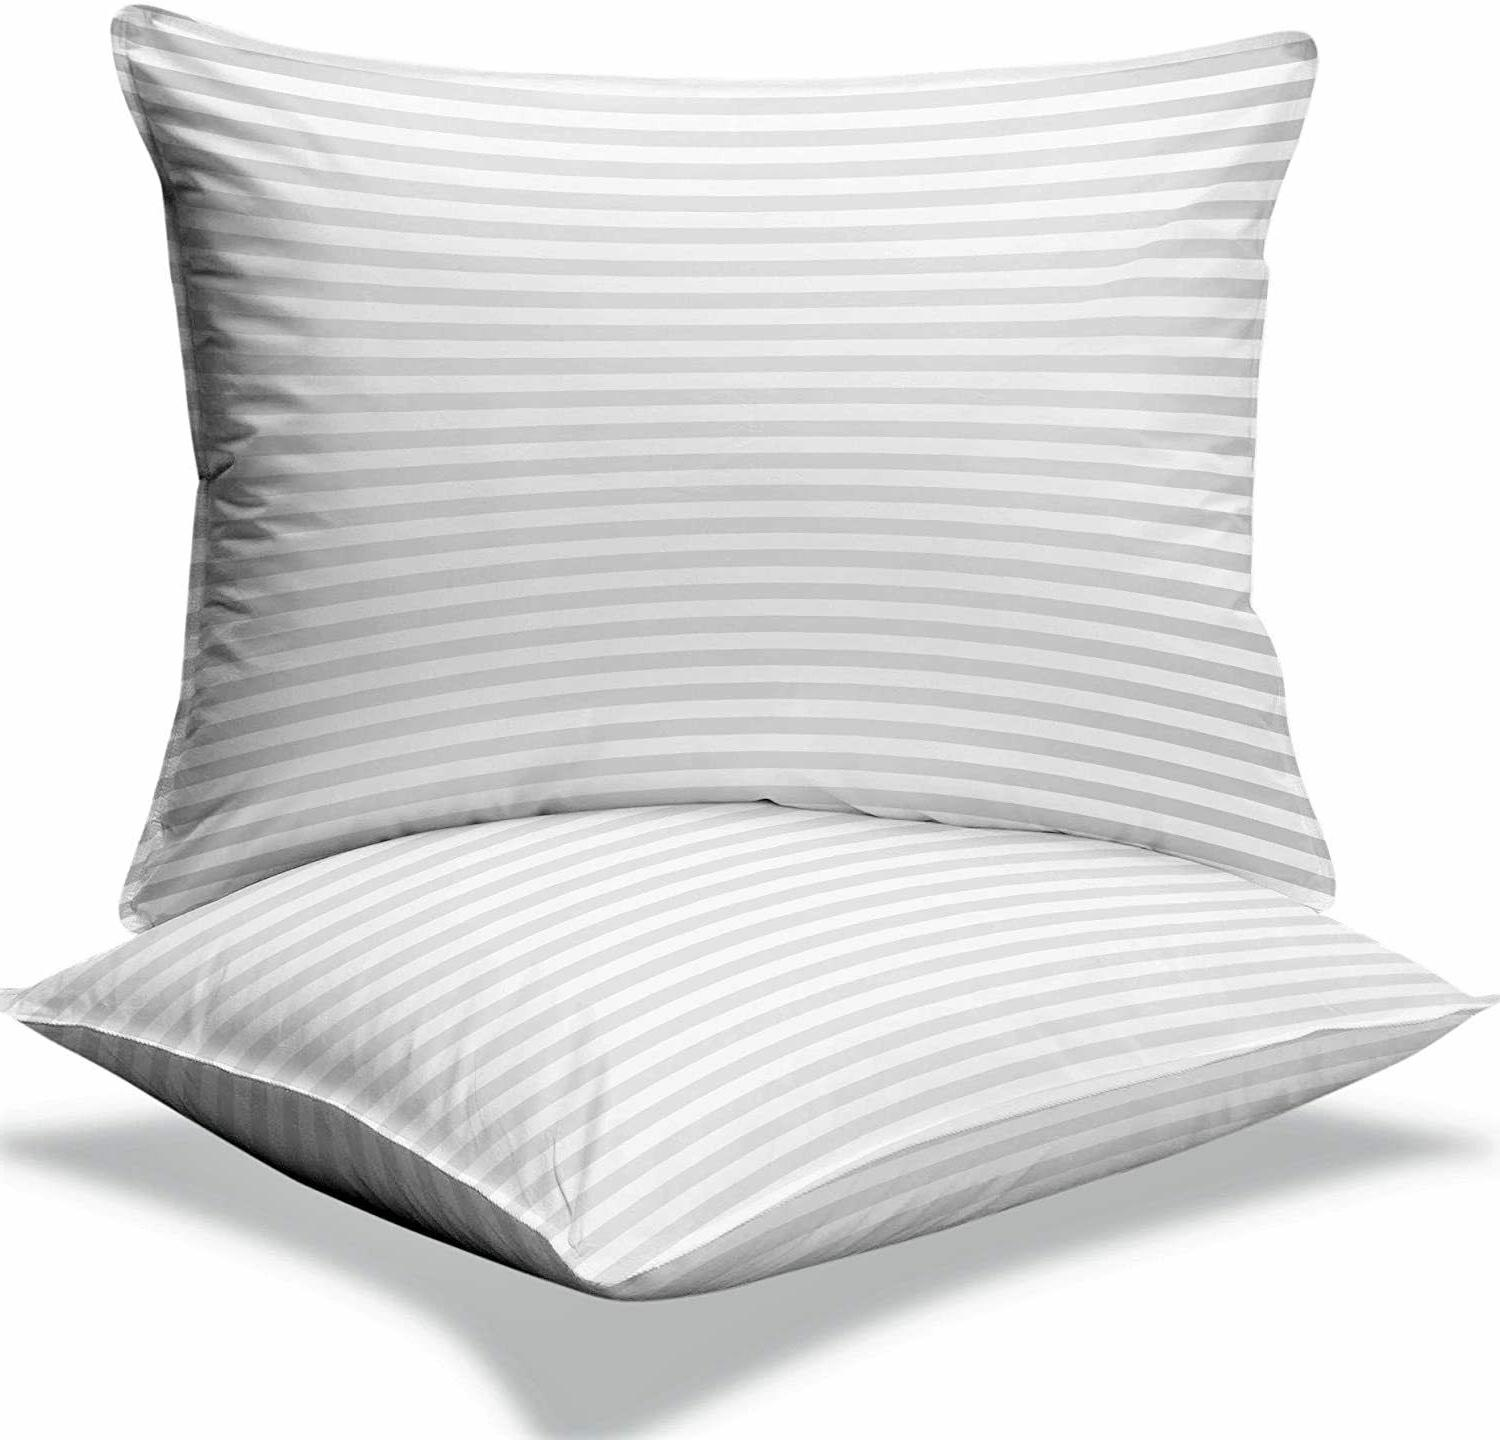 Ultra Soft Quality of King Size Pillows